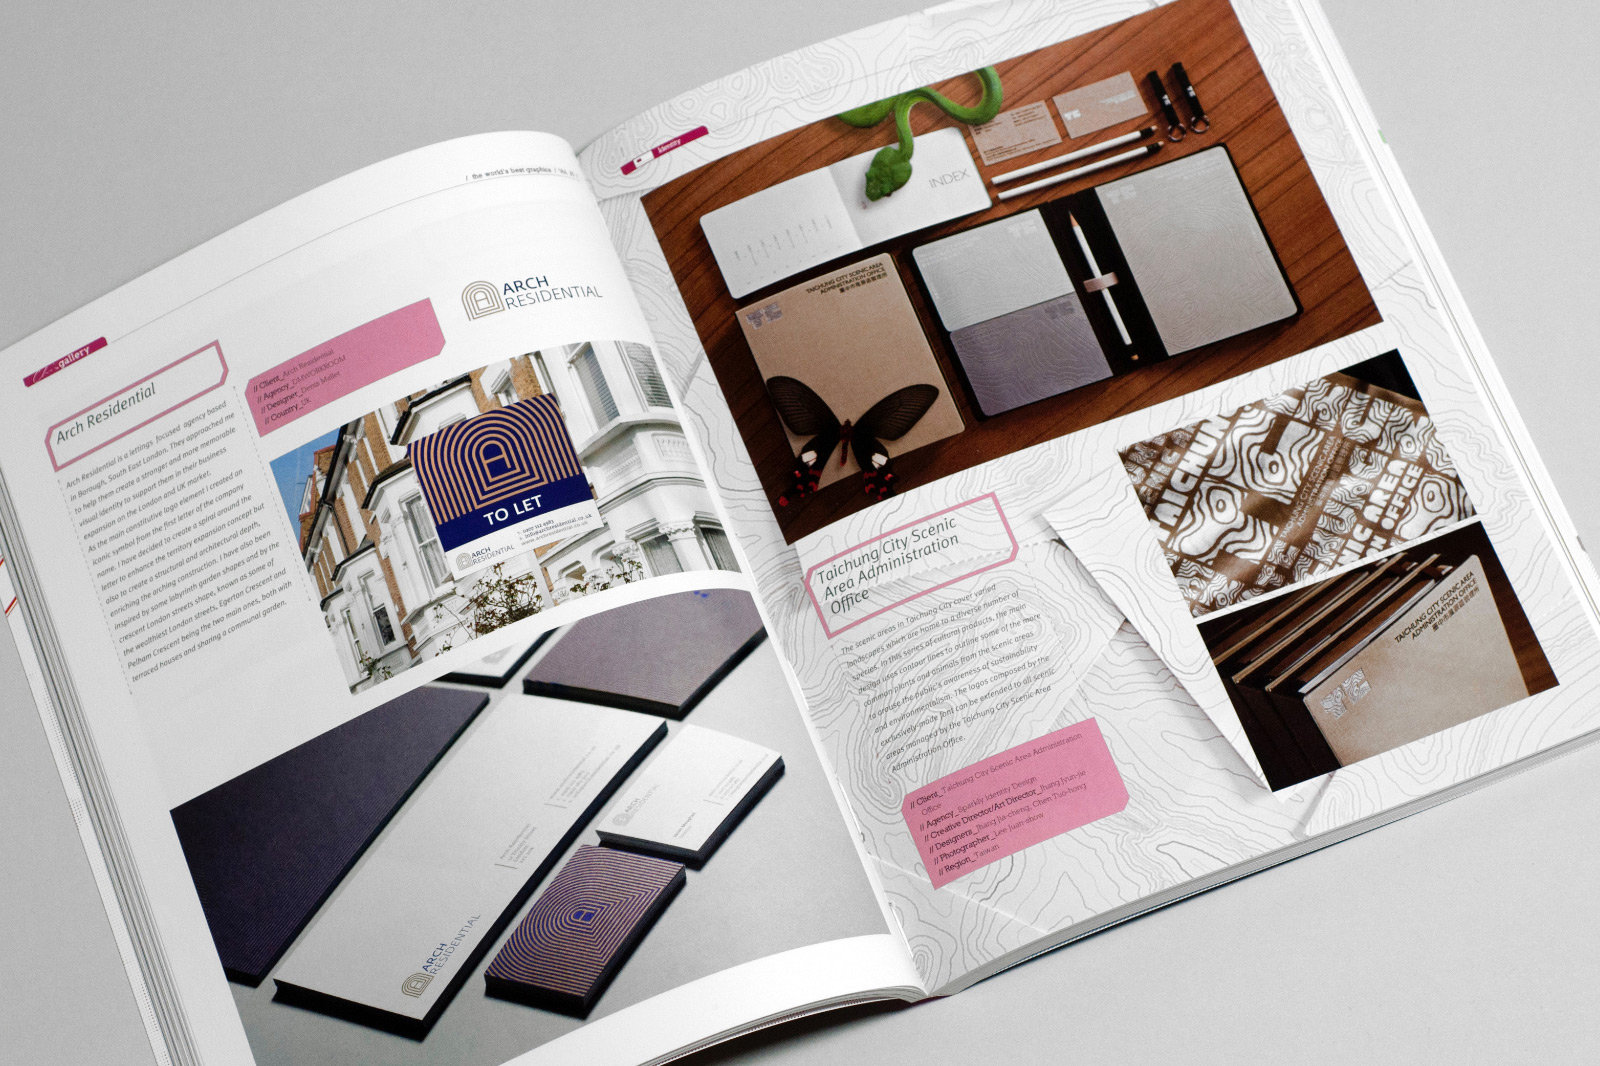 Arch Residential visual identity by Europa Studio published in Chois Gallery, Volume 25, p. 71–72, 2014